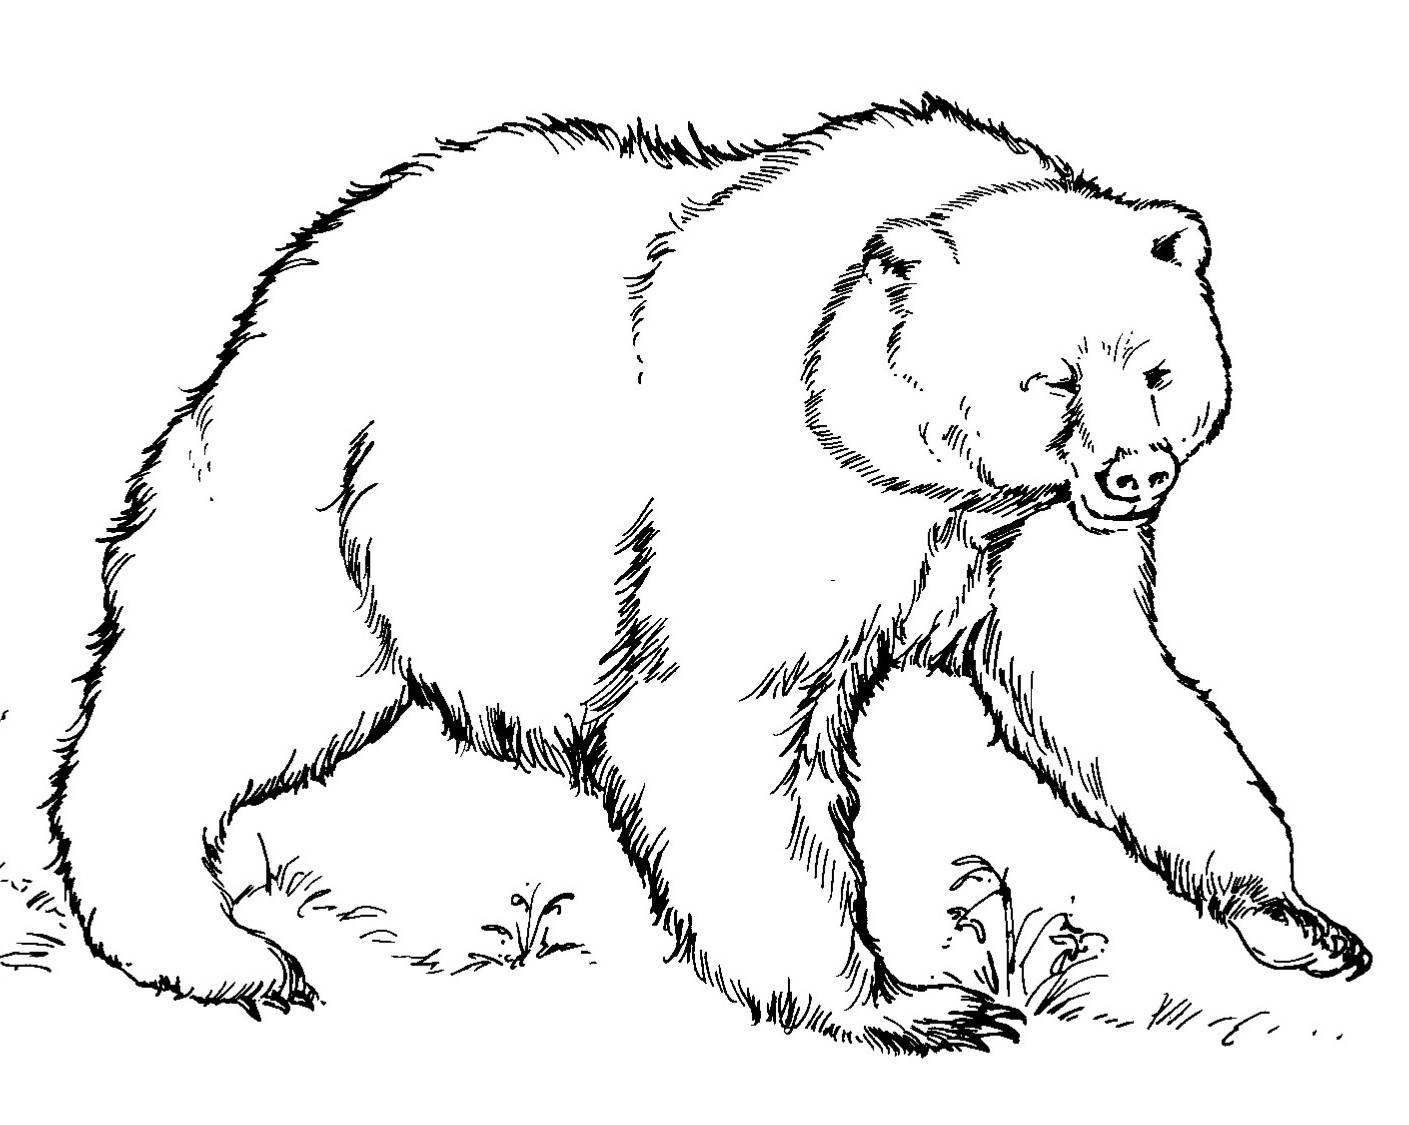 coloring picture of a bear printable teddy bear coloring pages for kids bear picture coloring of a